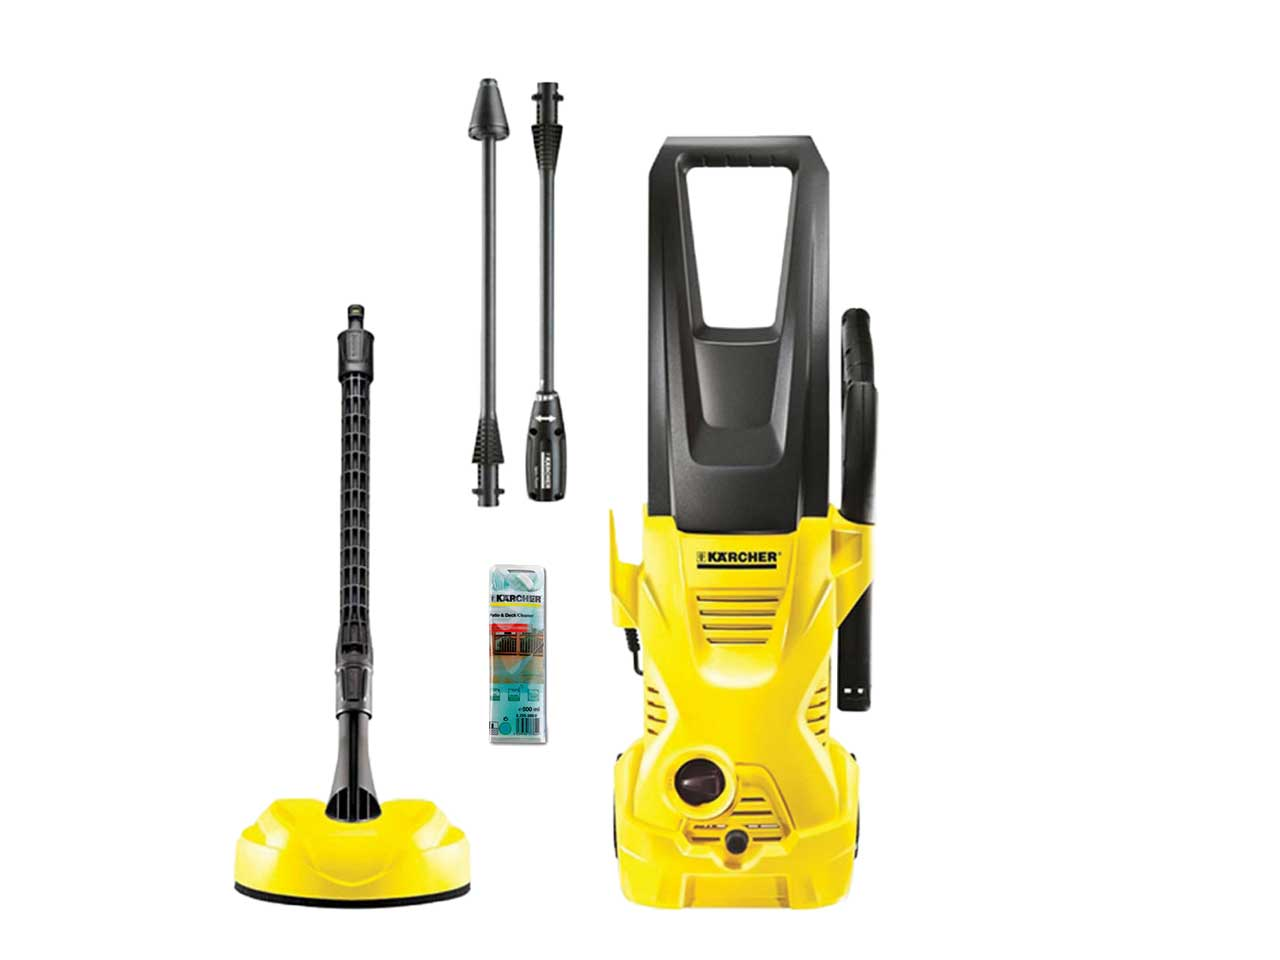 karcher k2hav 240v 110 bar pressure washer plus free wb60. Black Bedroom Furniture Sets. Home Design Ideas